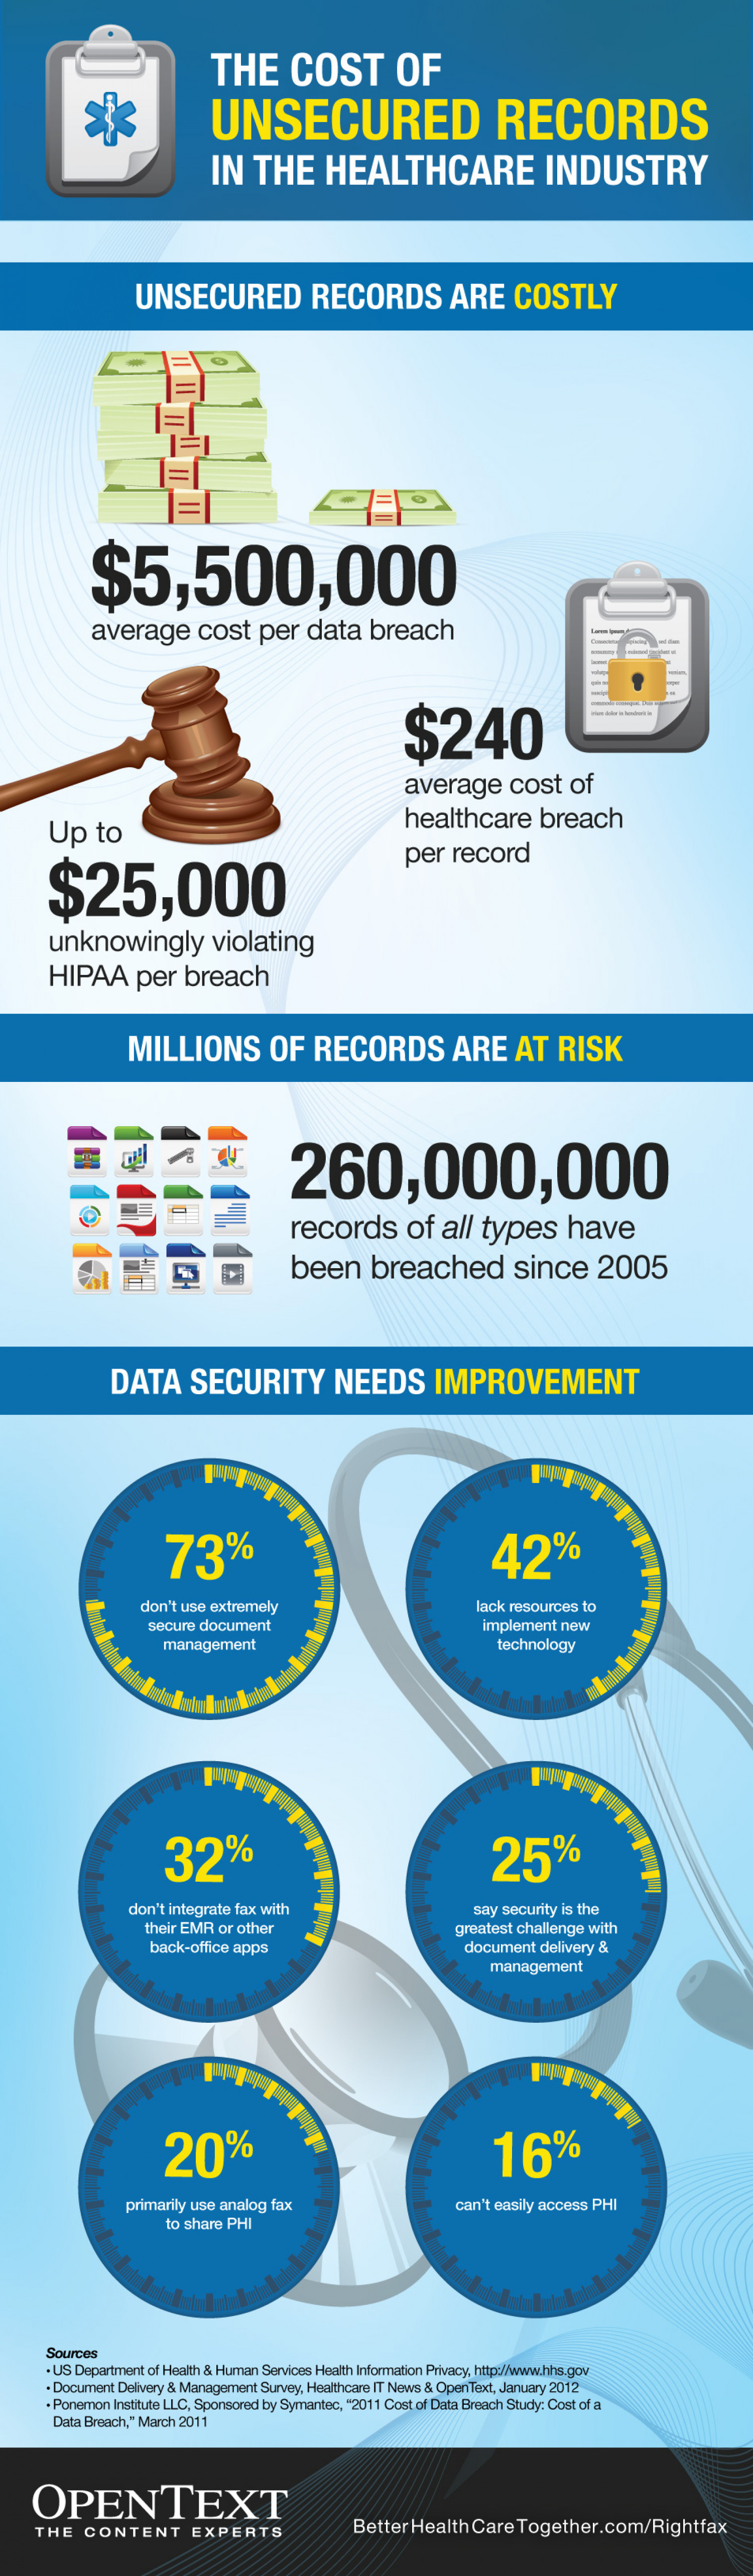 [Infographic] The Cost of Unsecured Records in the Healthcare Industry Infographic